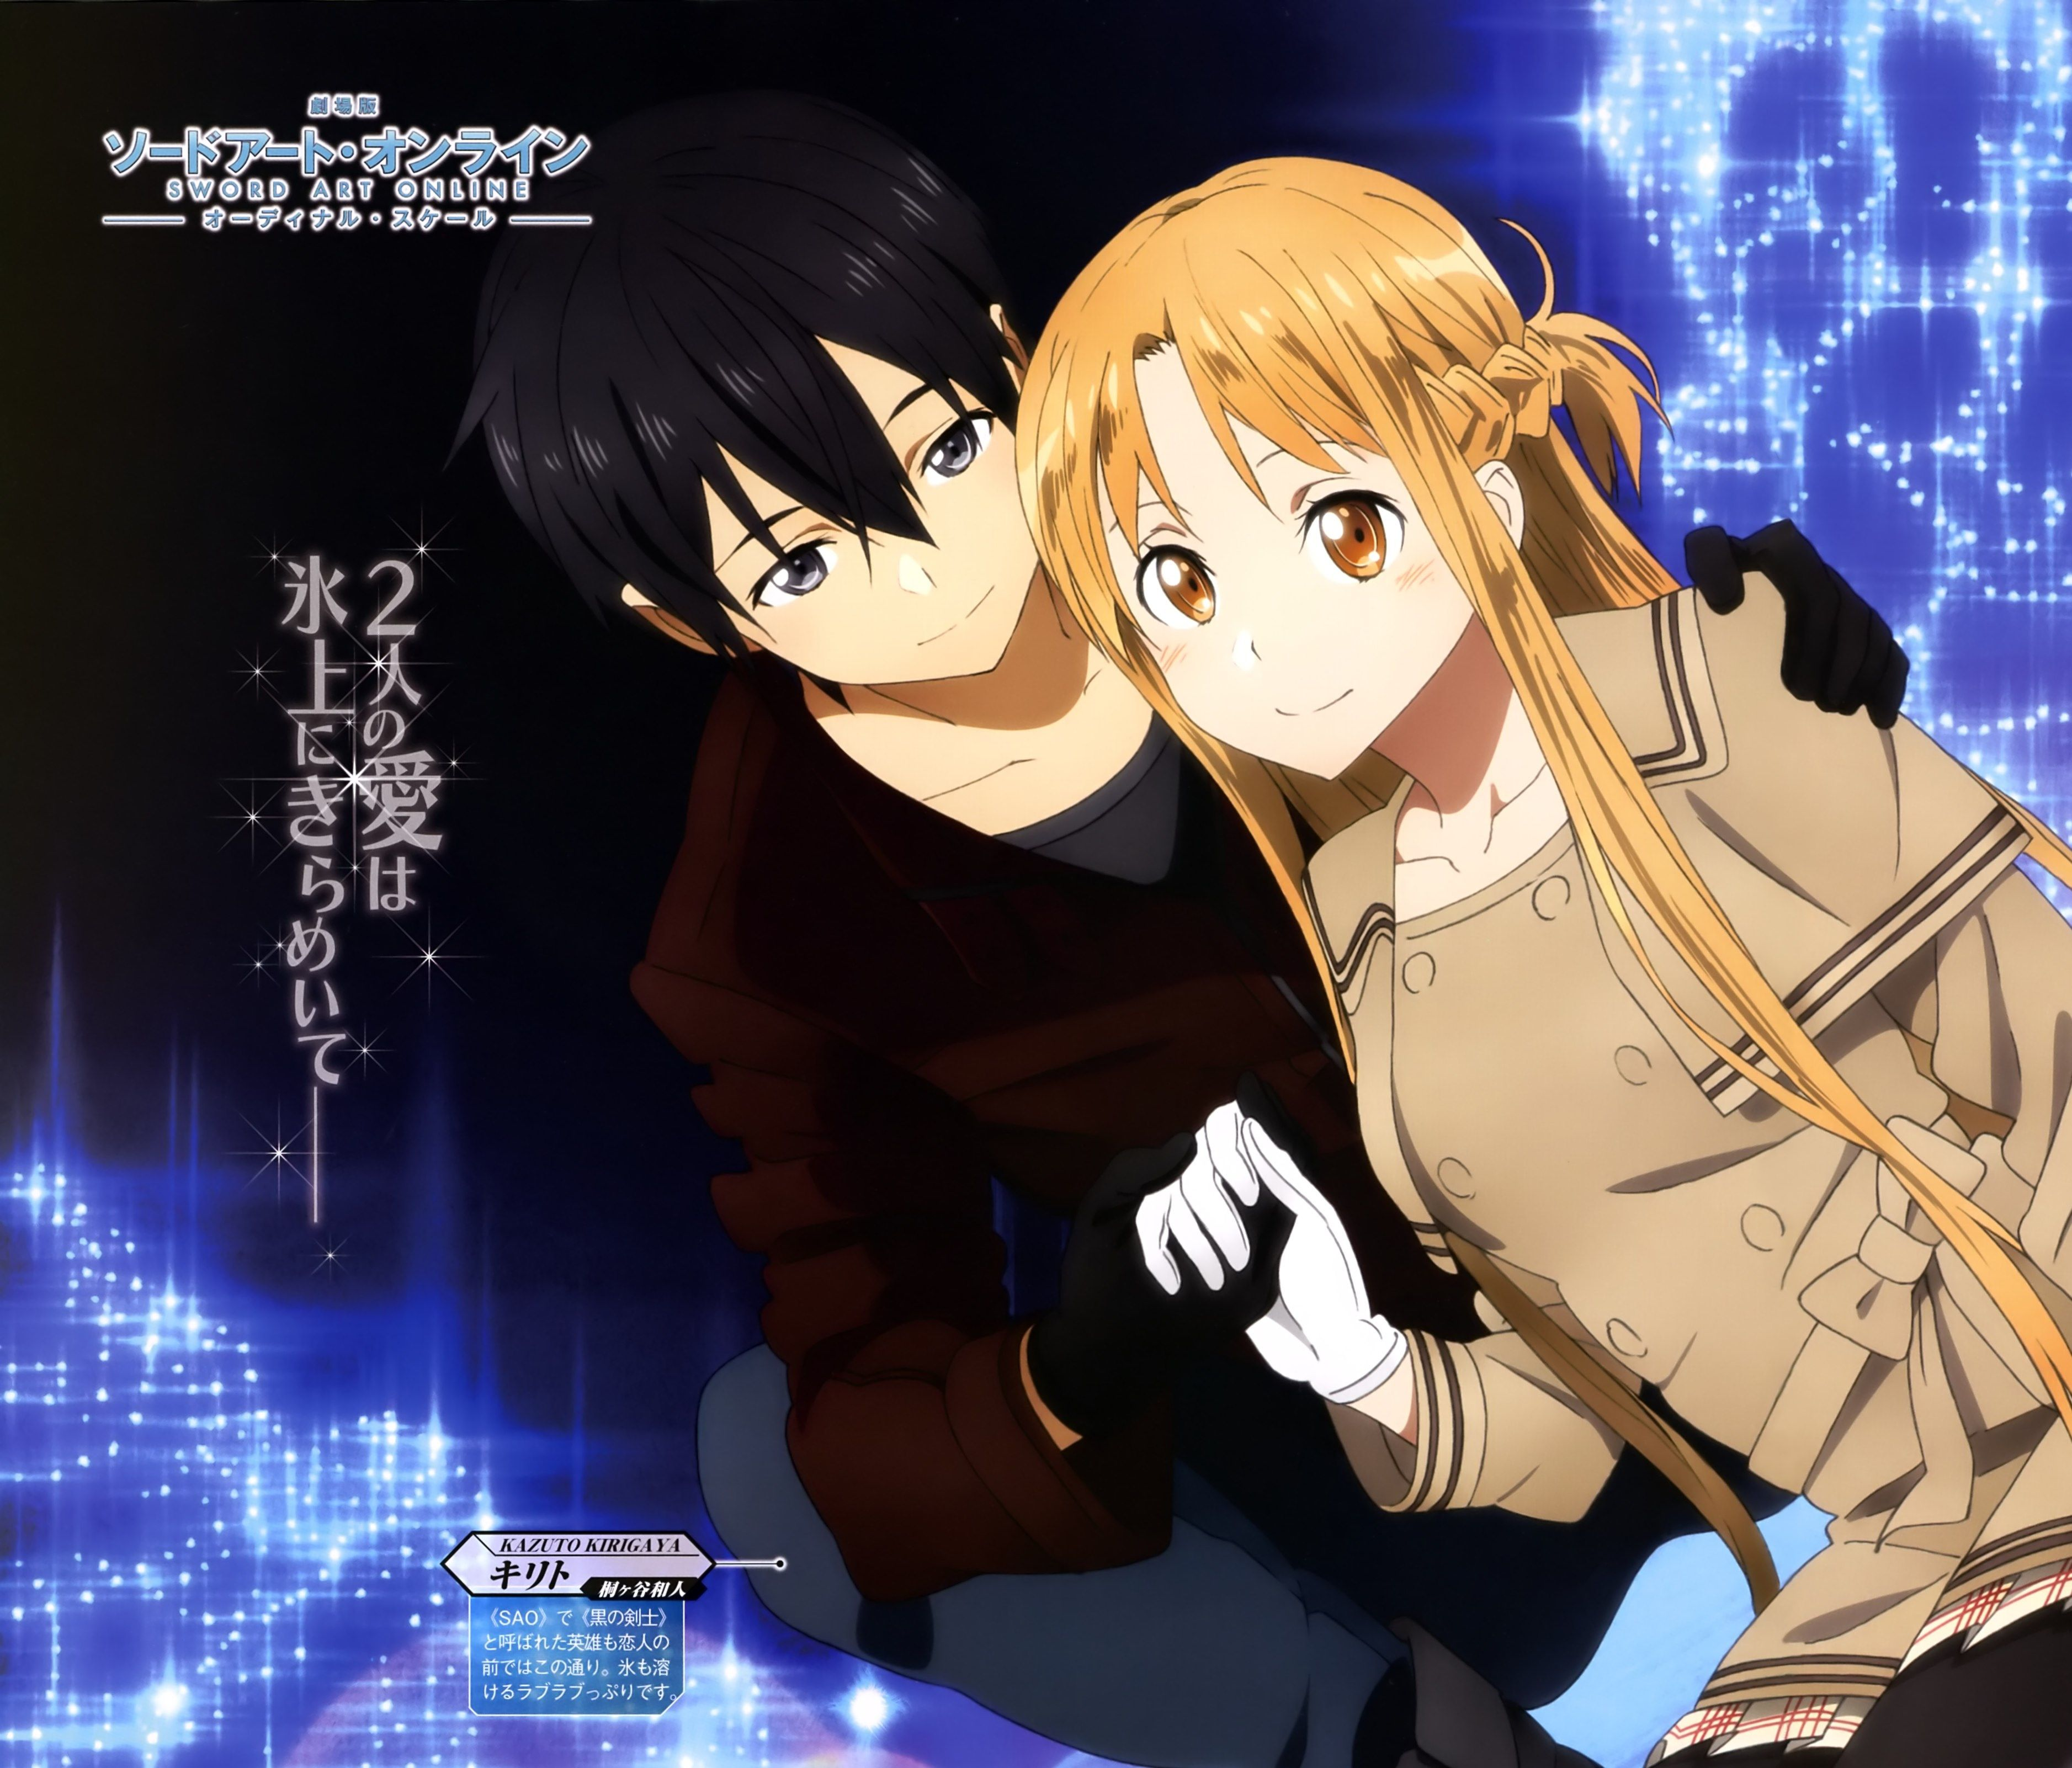 Great Wallpaper Movie Sword Art Online - aefe447e1ec0247bd9a3406bfa50380a  Perfect Image Reference_162164.jpg